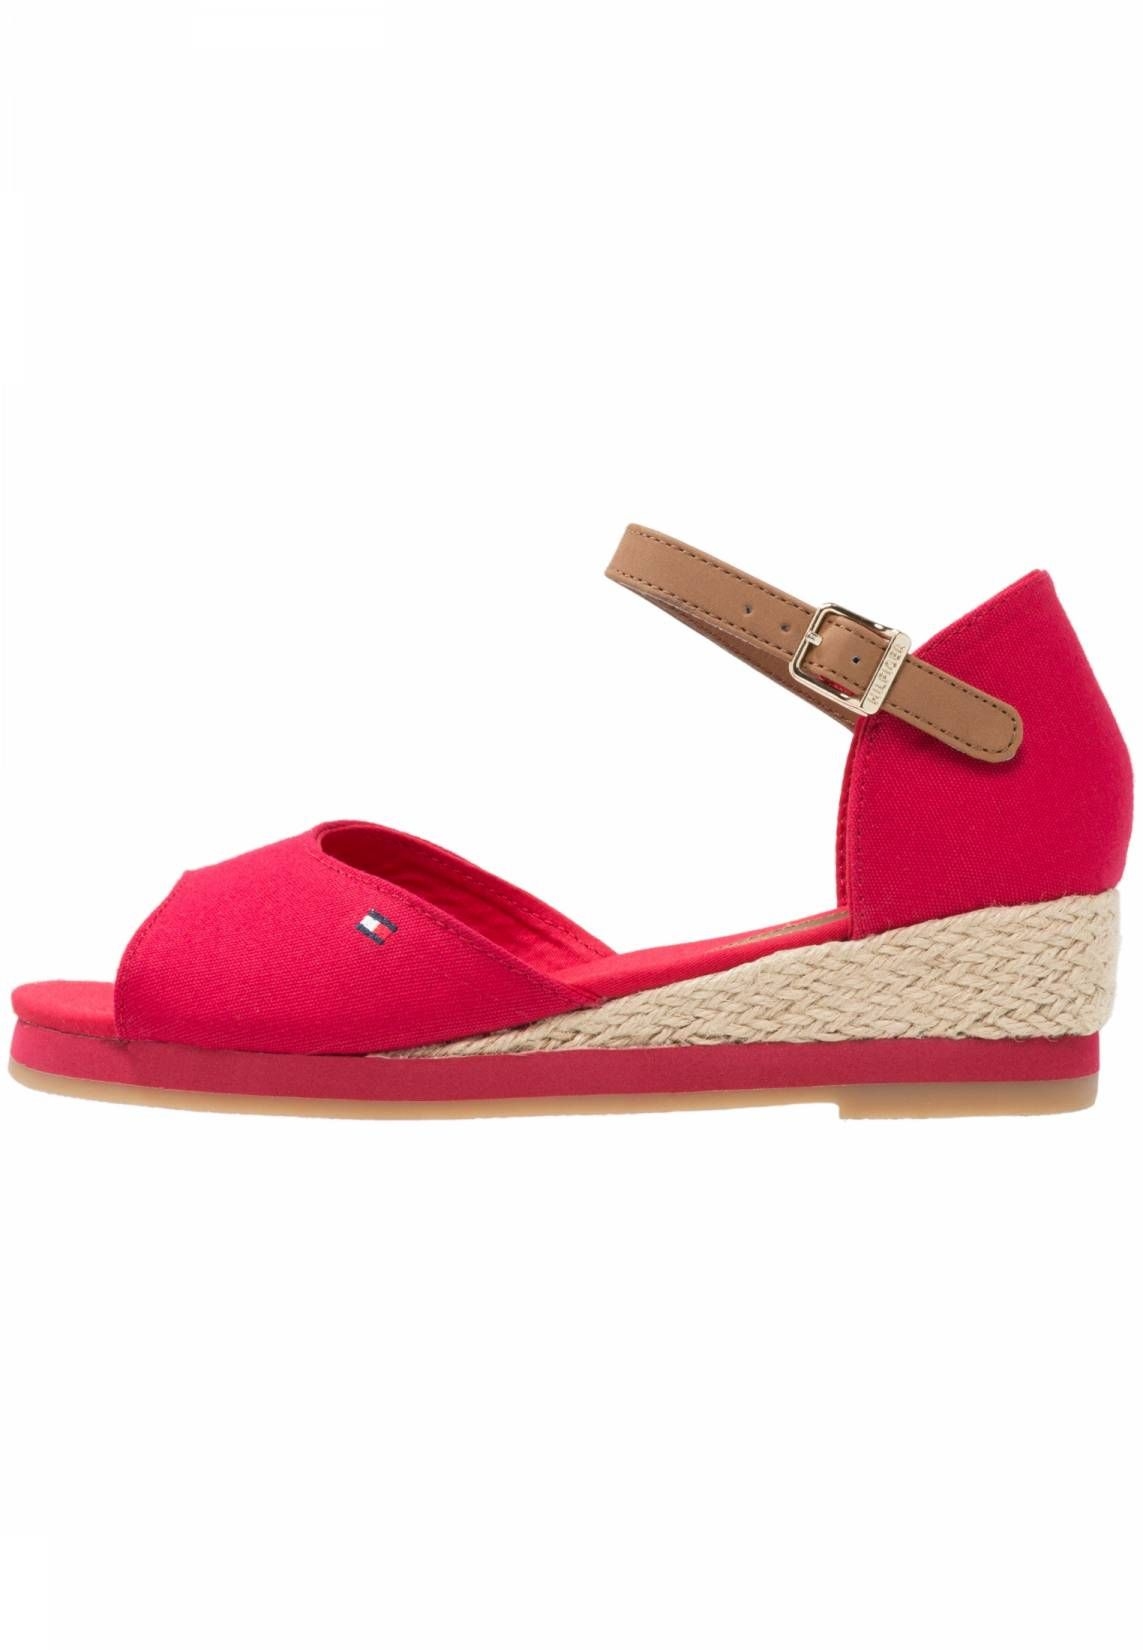 Tommy Hilfiger Sandalias red YmtIpvPm - fortunately.contenedores ...